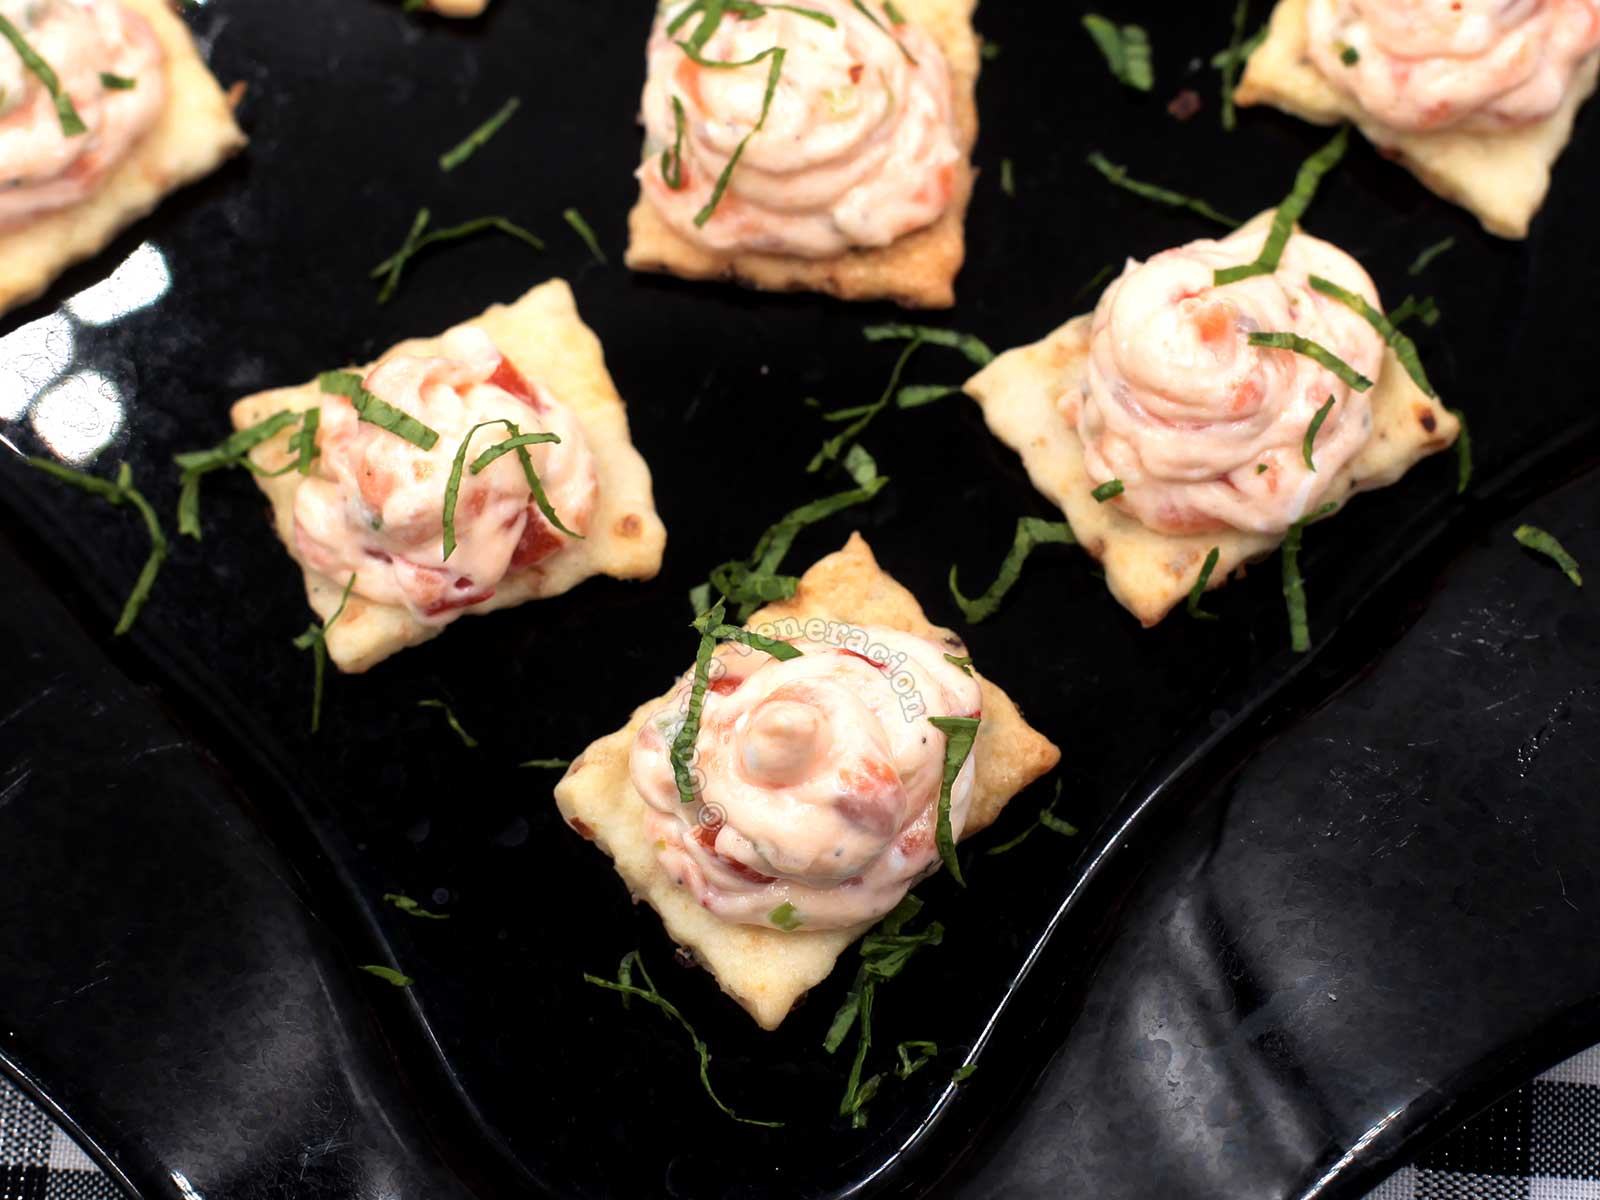 Smoked Salmon and Cream Cheese Dip / Spread Piped on Crackers